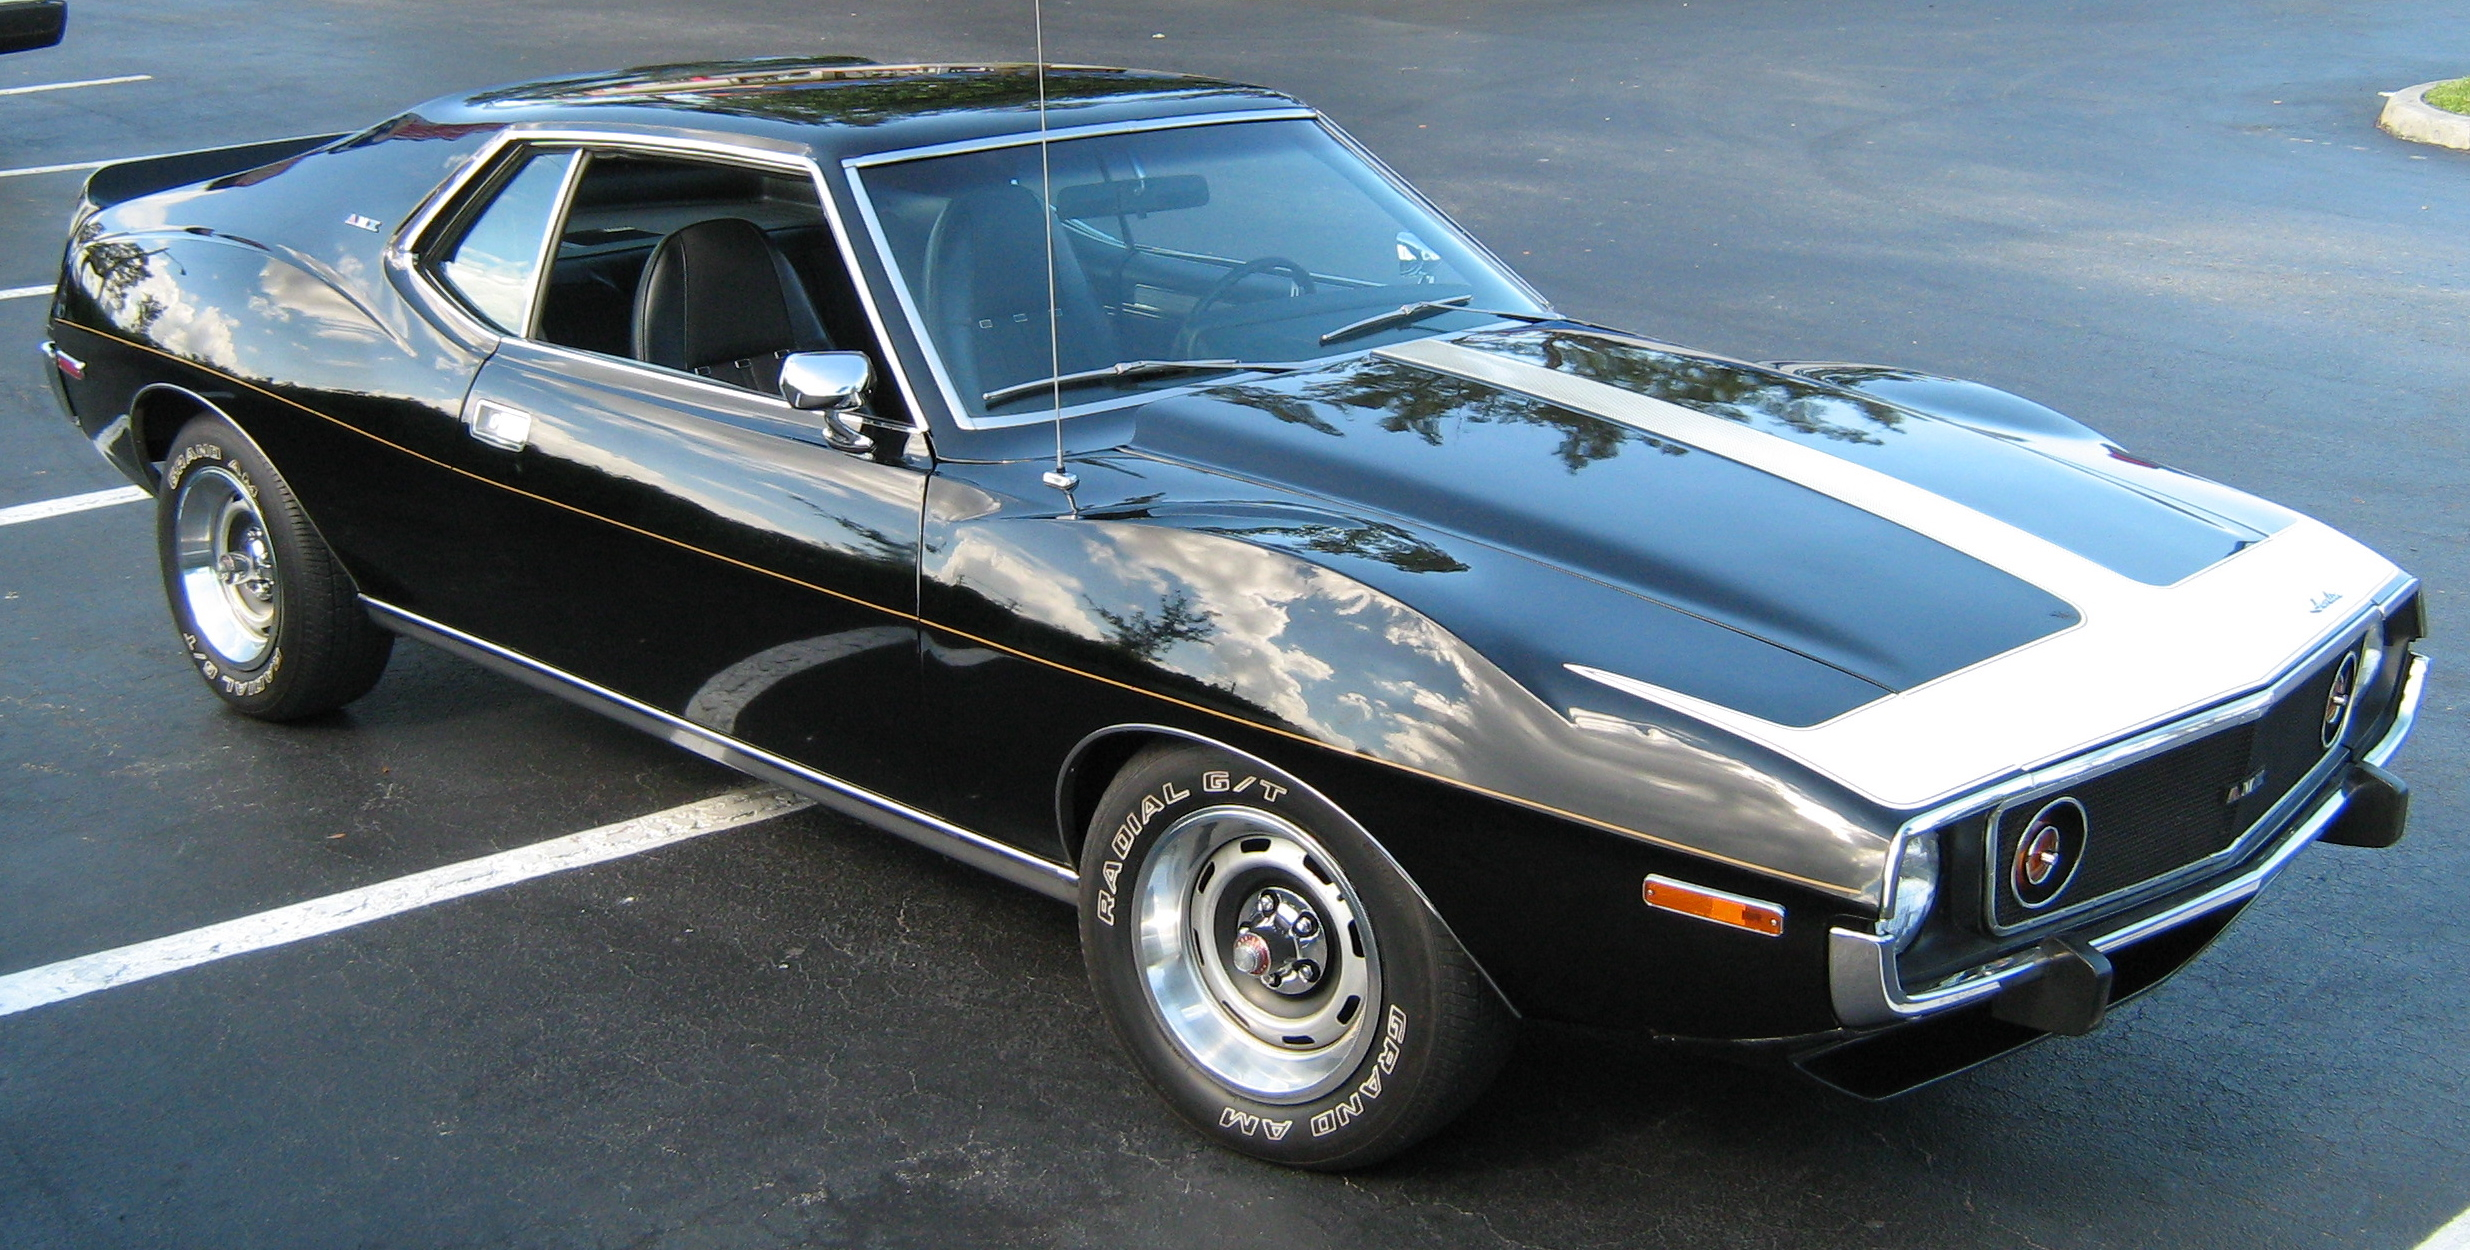 Amc javelin photo - 2